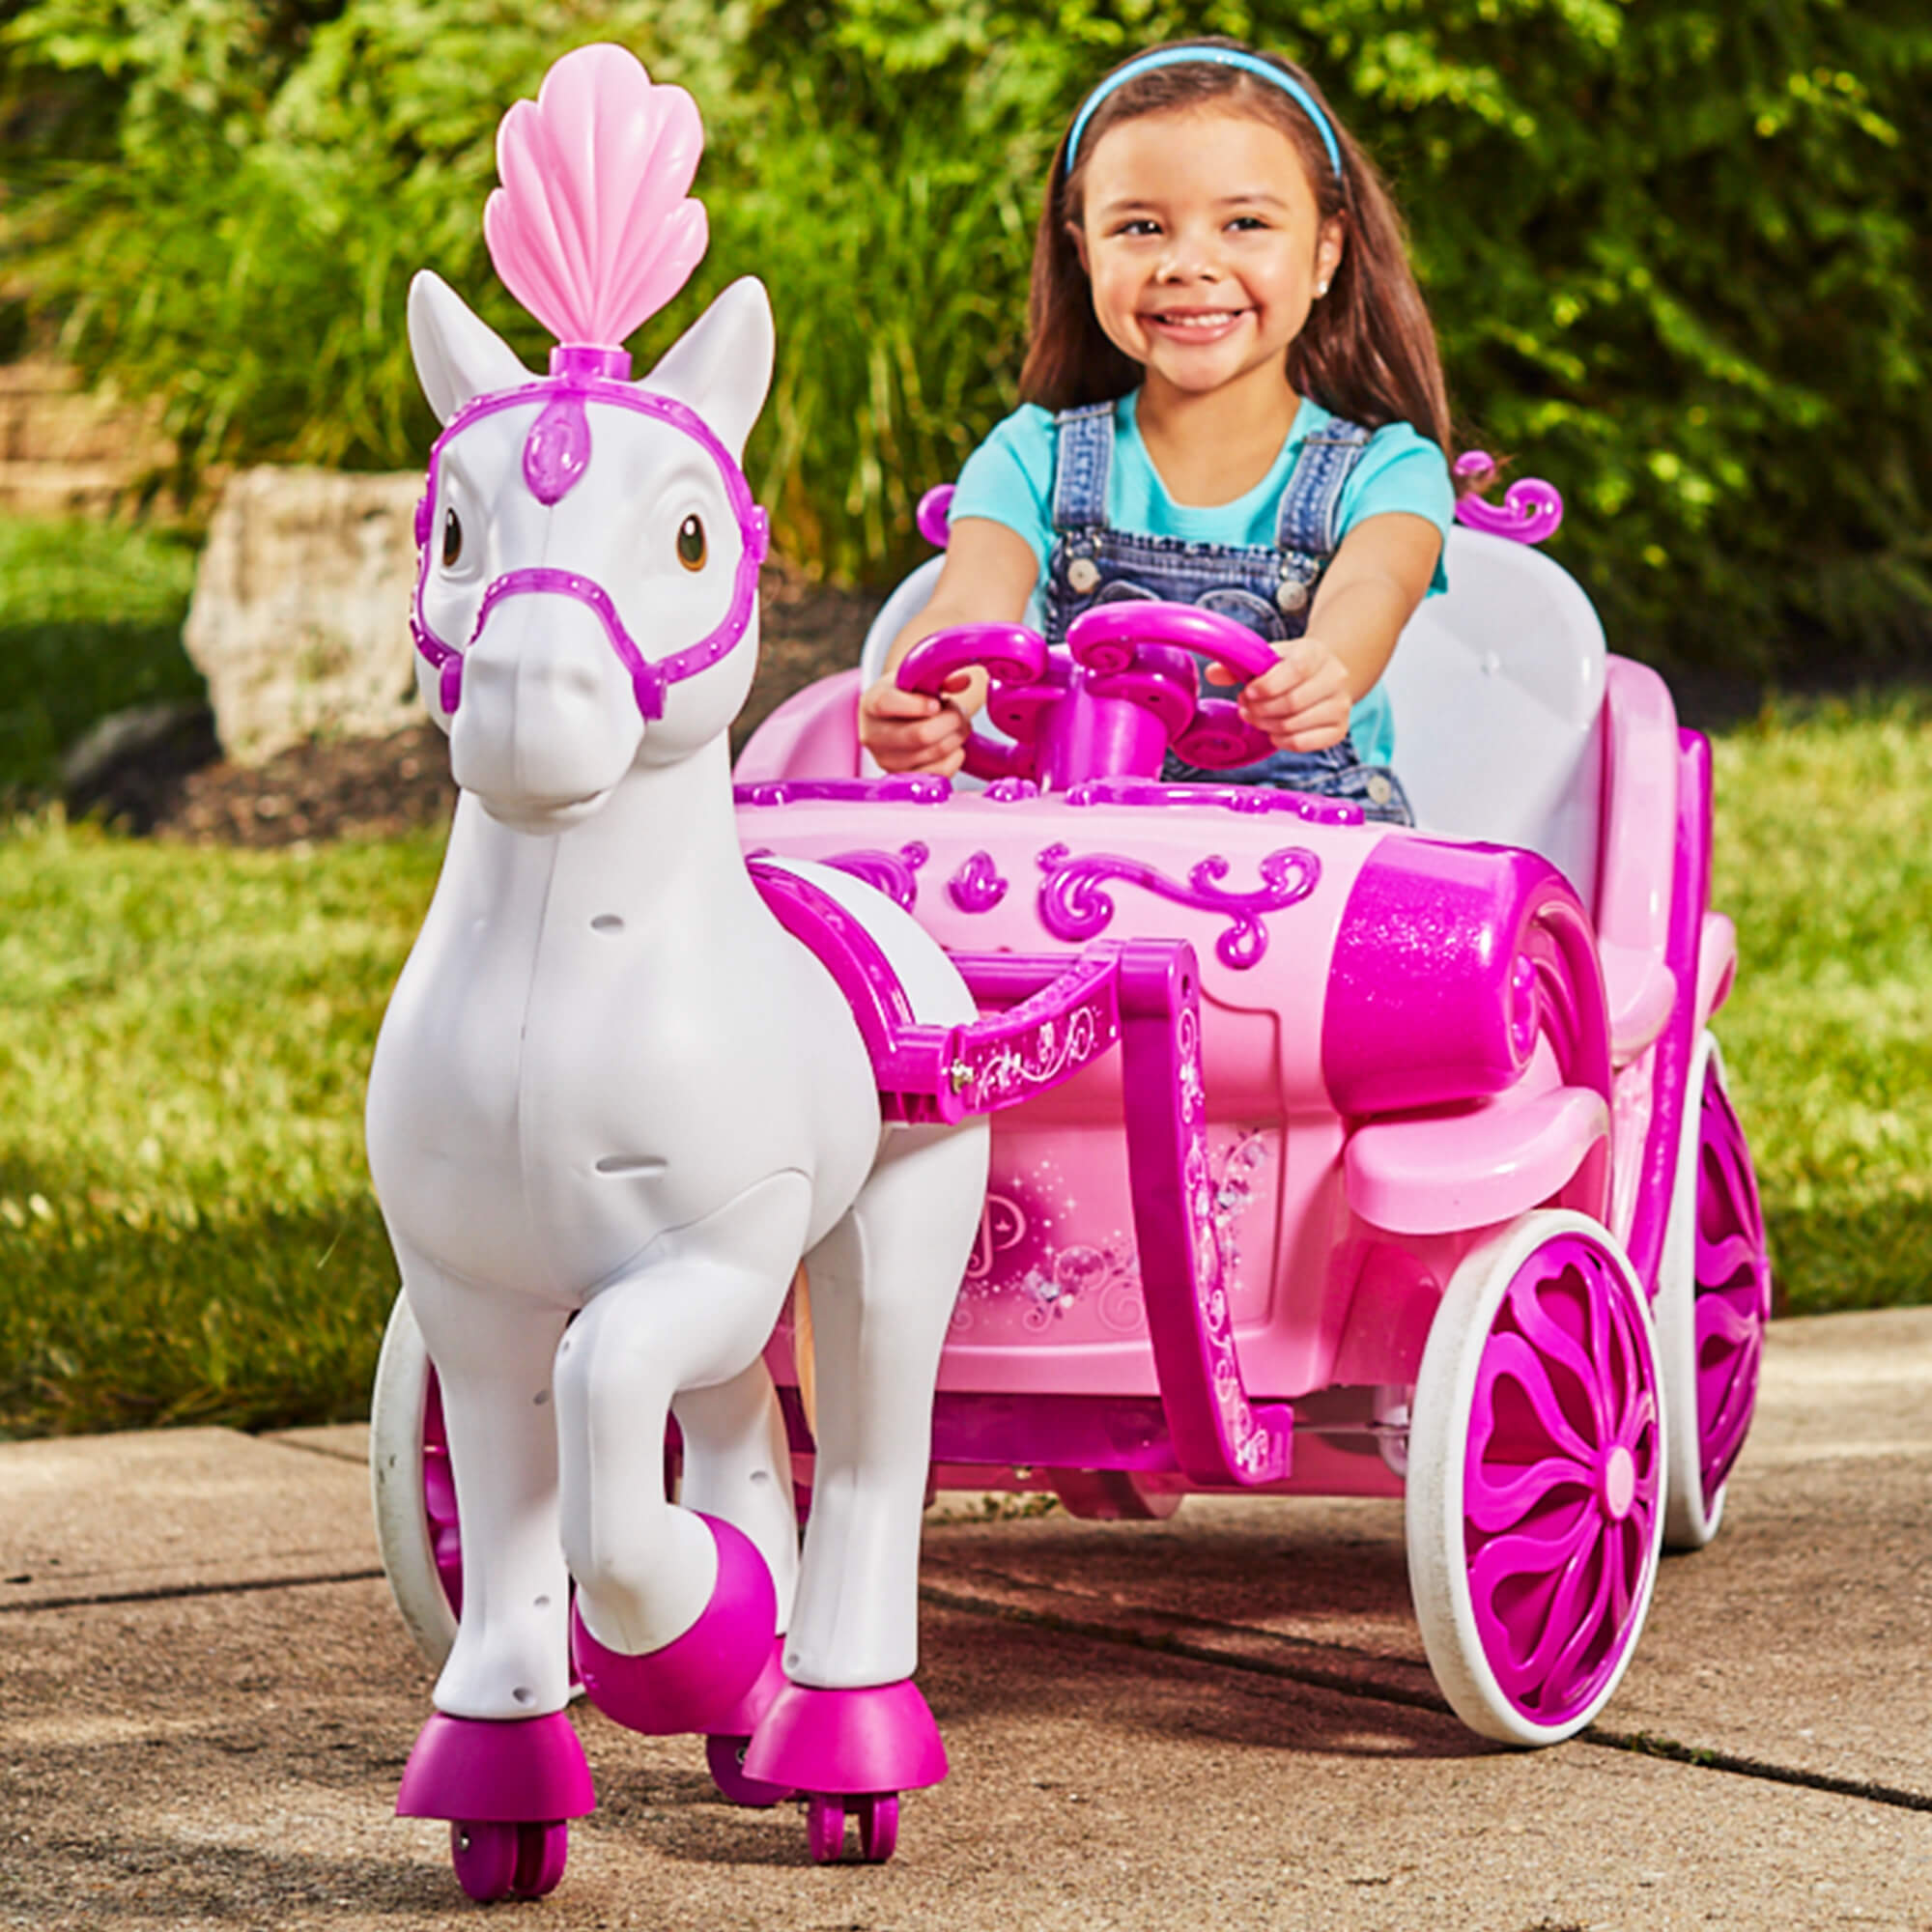 Disney Princess Royal Horse and Carriage Girls 6V Ride-On Toy by Huffy by Huffy